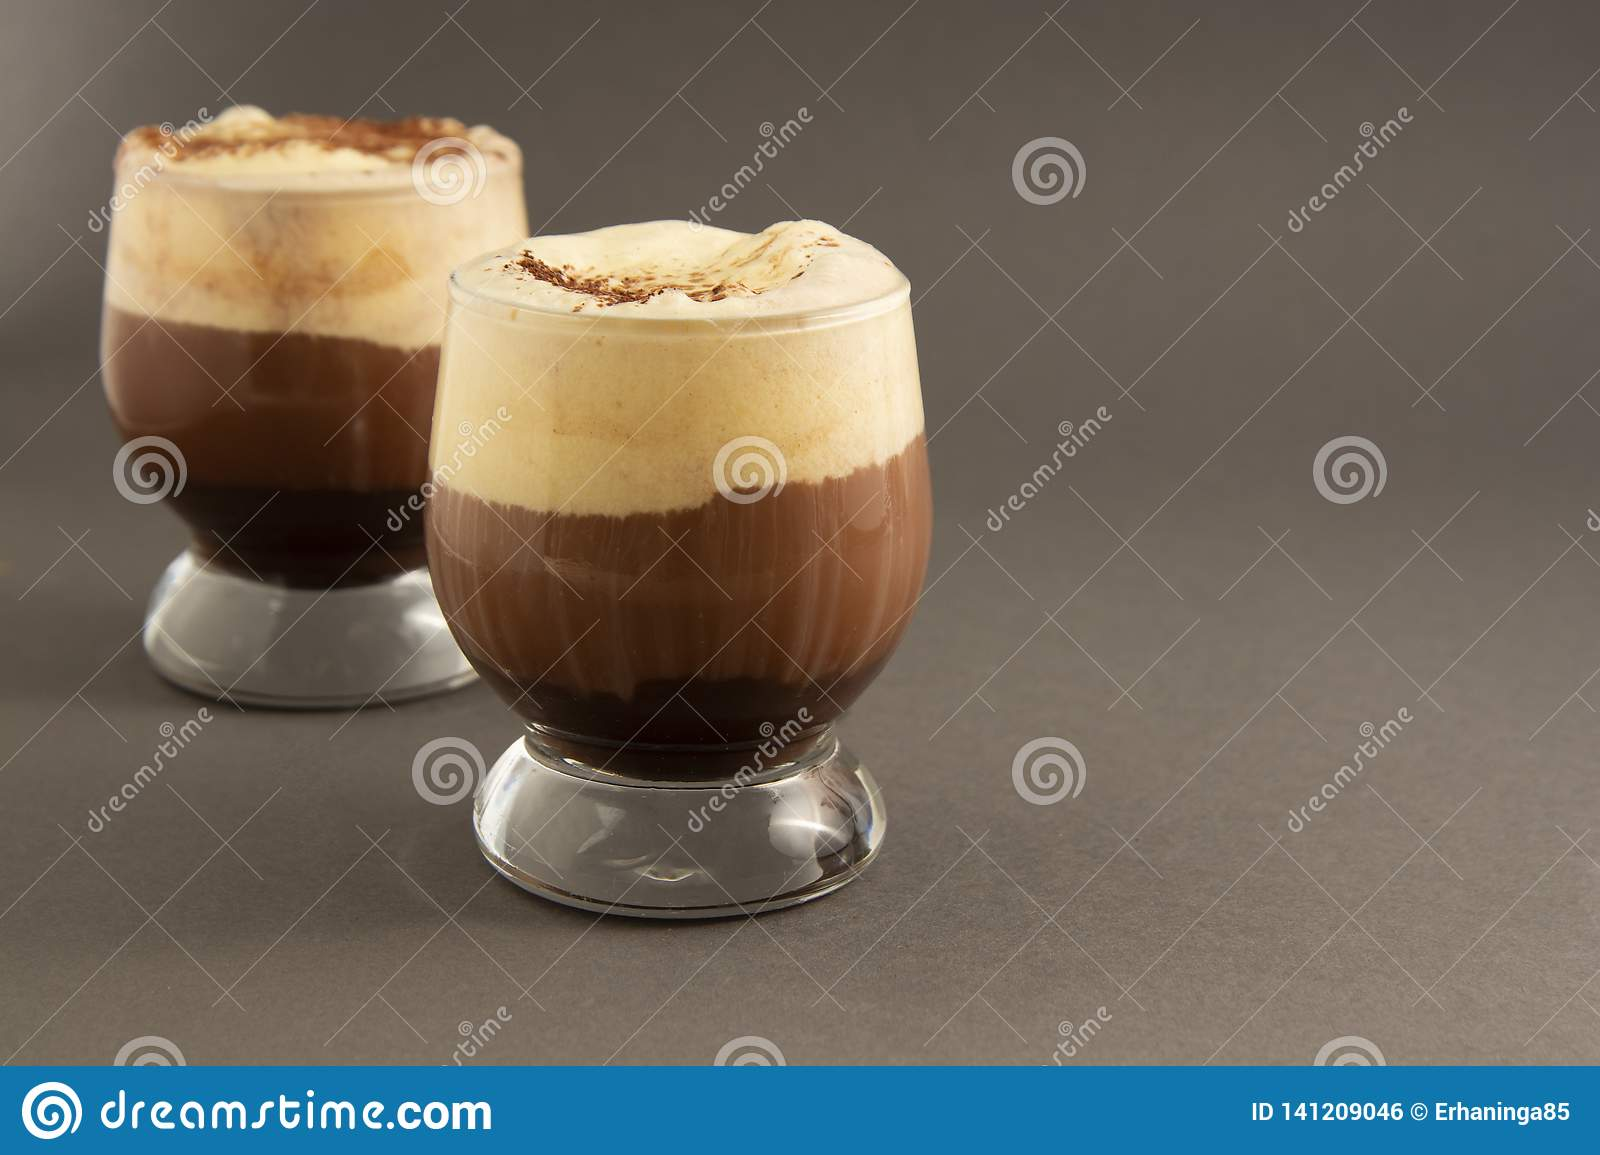 Coffee affogato with vanilla ice cream and espresso. Glass with coffee drink and icecream. Copy space